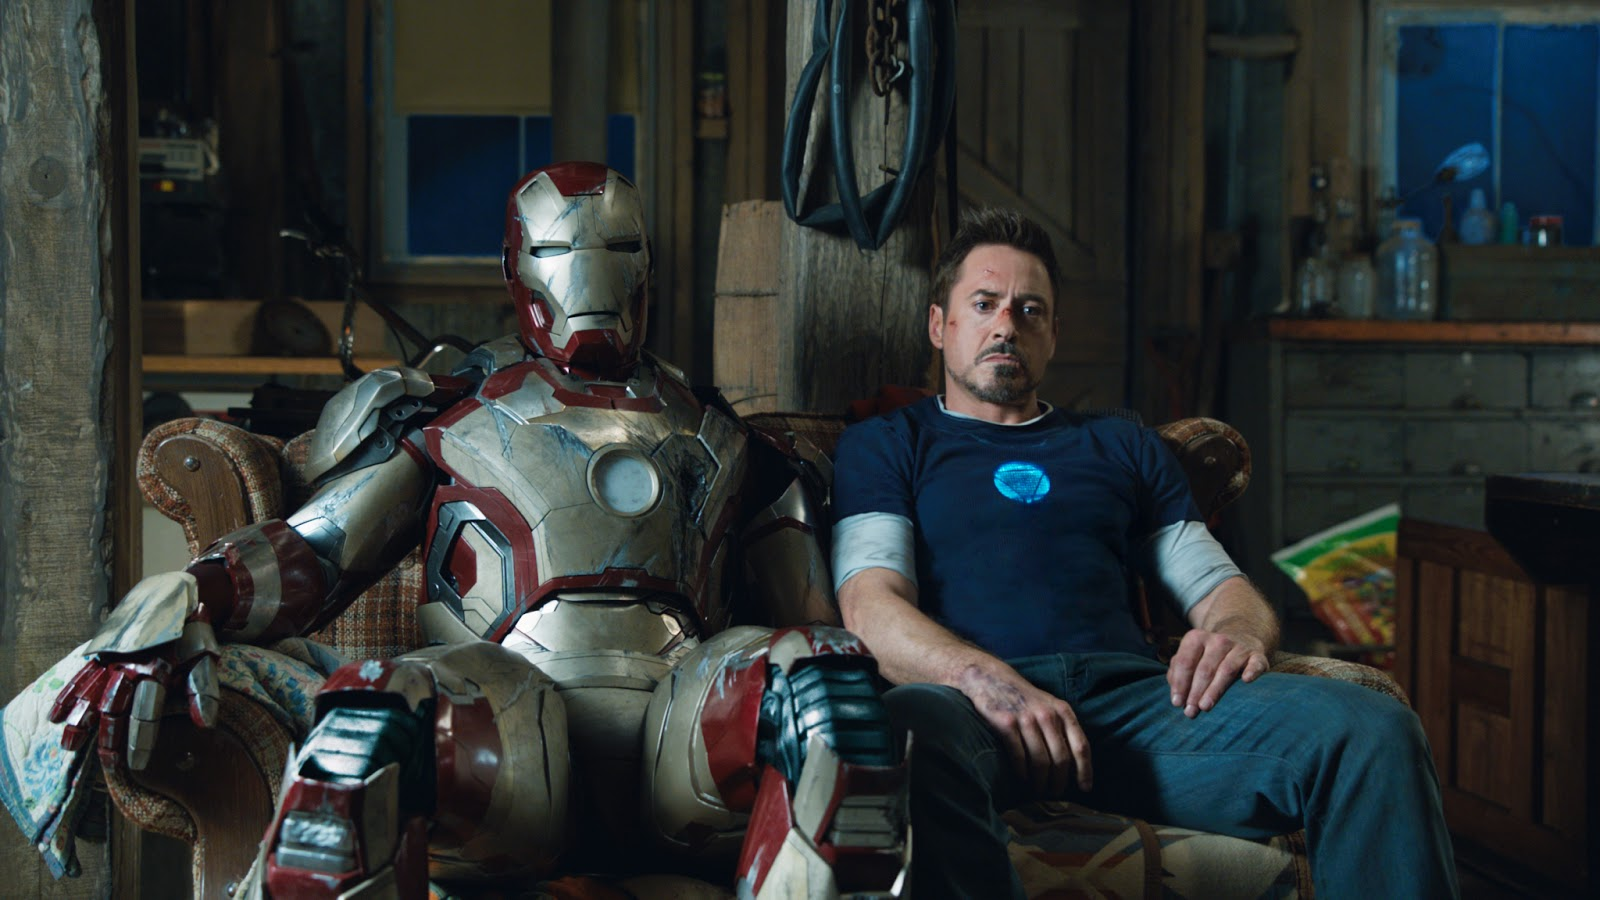 Reel talk online review iron man 3 is the epic summer blockbuster review iron man 3 is the epic summer blockbuster we needed this spring voltagebd Gallery